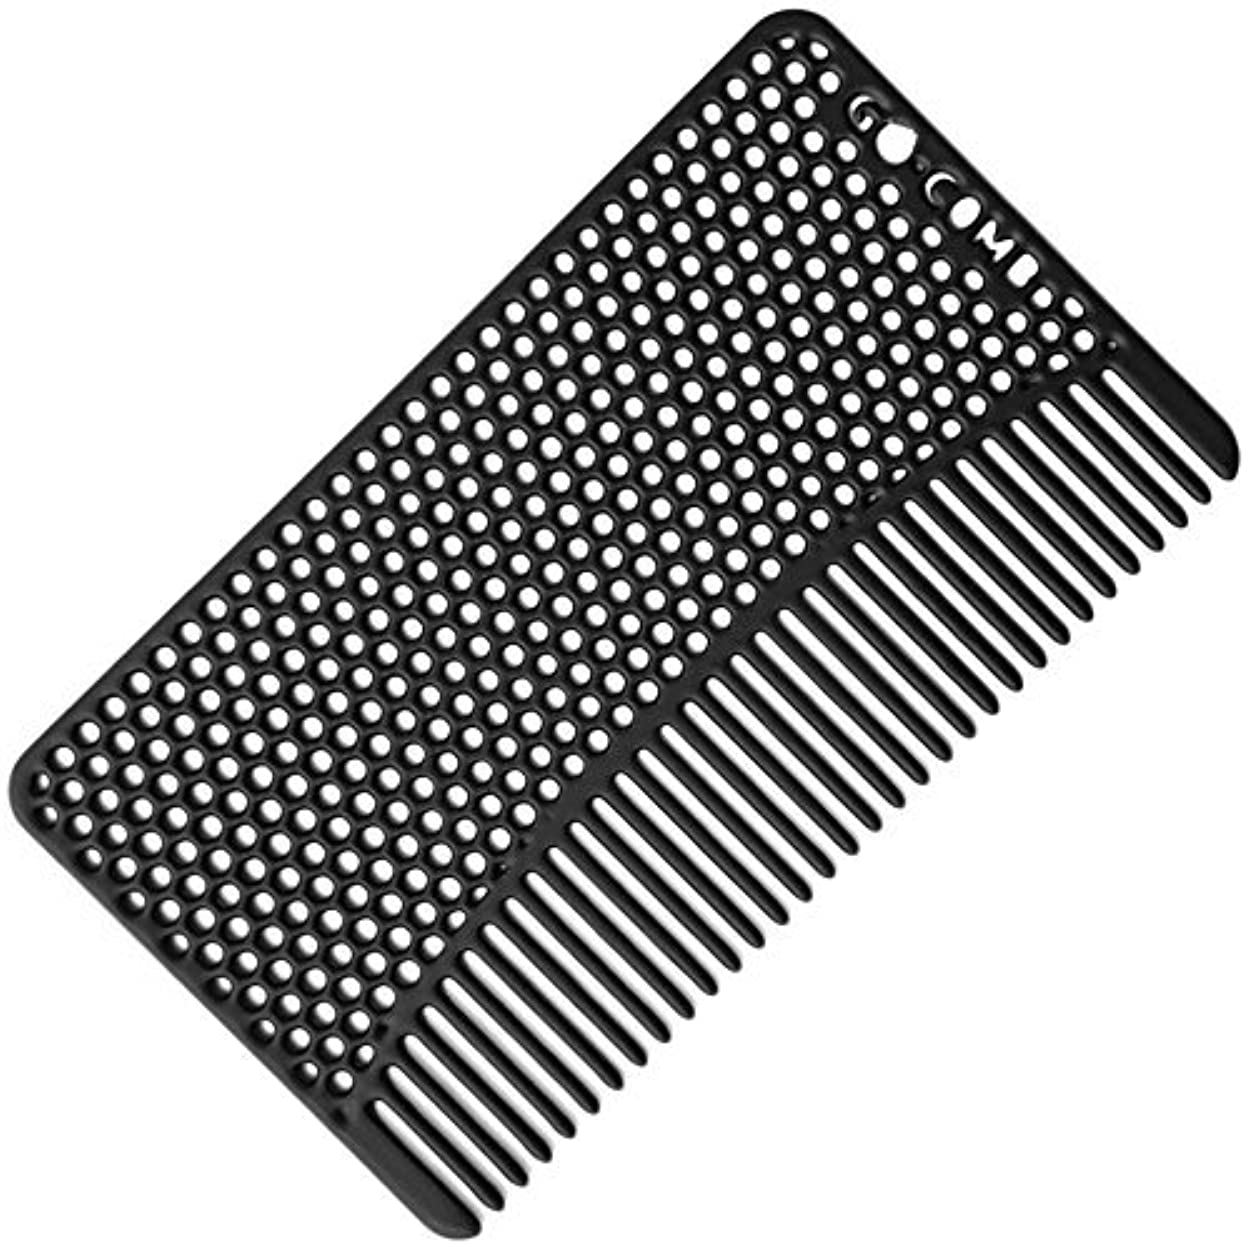 道チェスをするたるみGo-Comb - Wallet Comb - Sleek, Durable Stainless Steel Hair and Beard Comb - Black [並行輸入品]